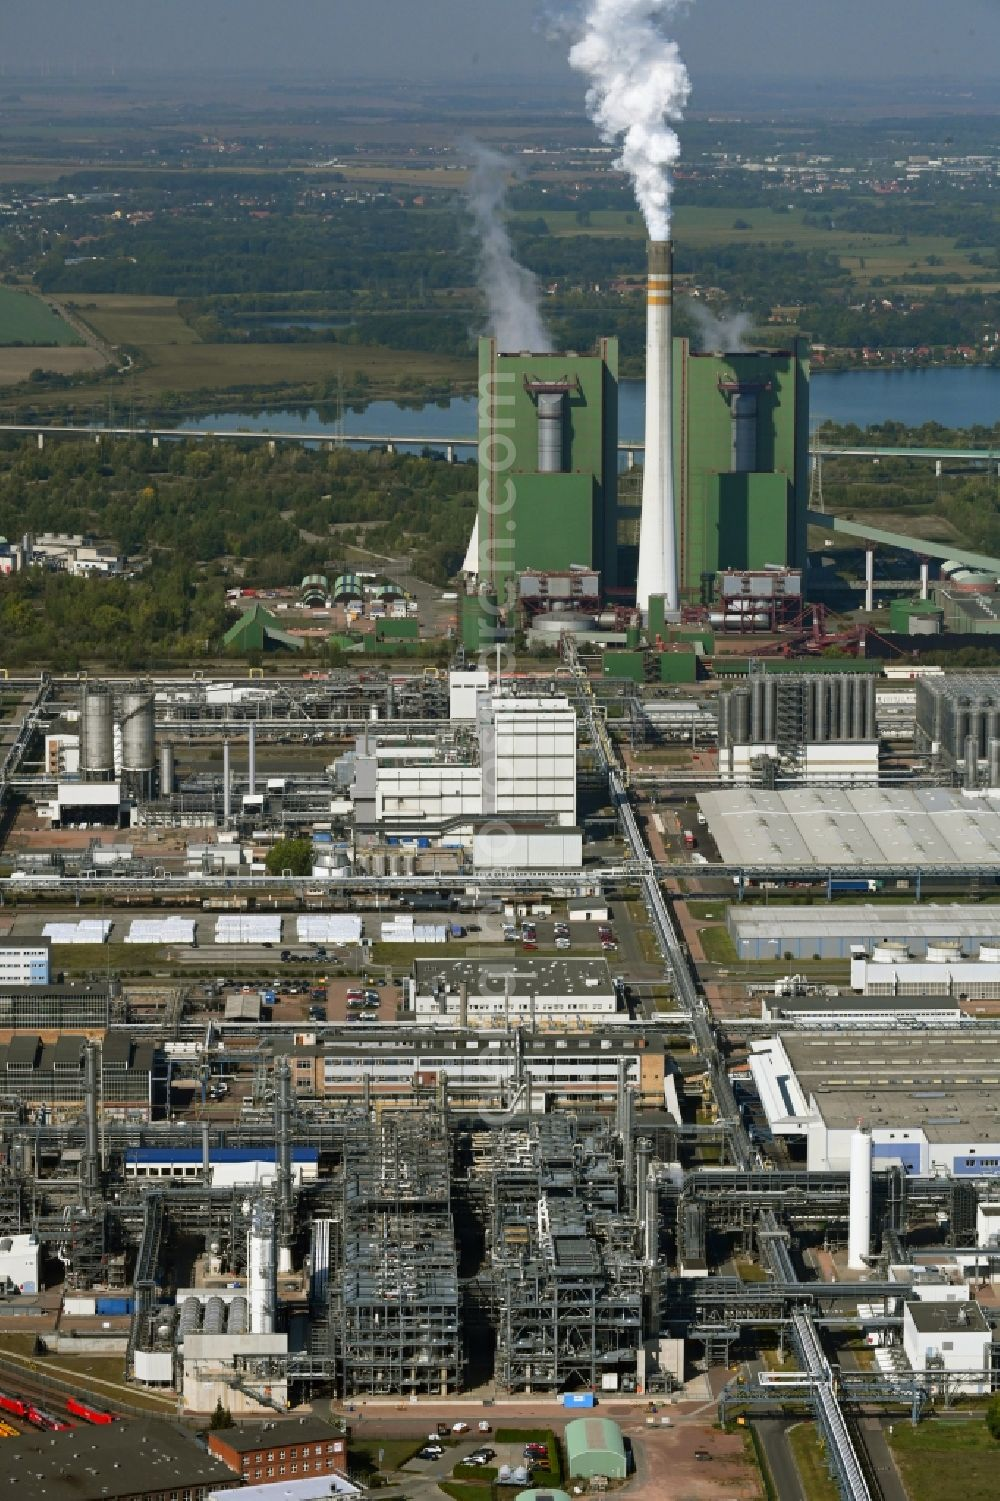 Aerial image Schkopau - Technical facilities in the industrial area with refinery systems and the exhaust towers of the thermal power station in the district Hohenweiden in Schkopau in the state Saxony-Anhalt, Germany